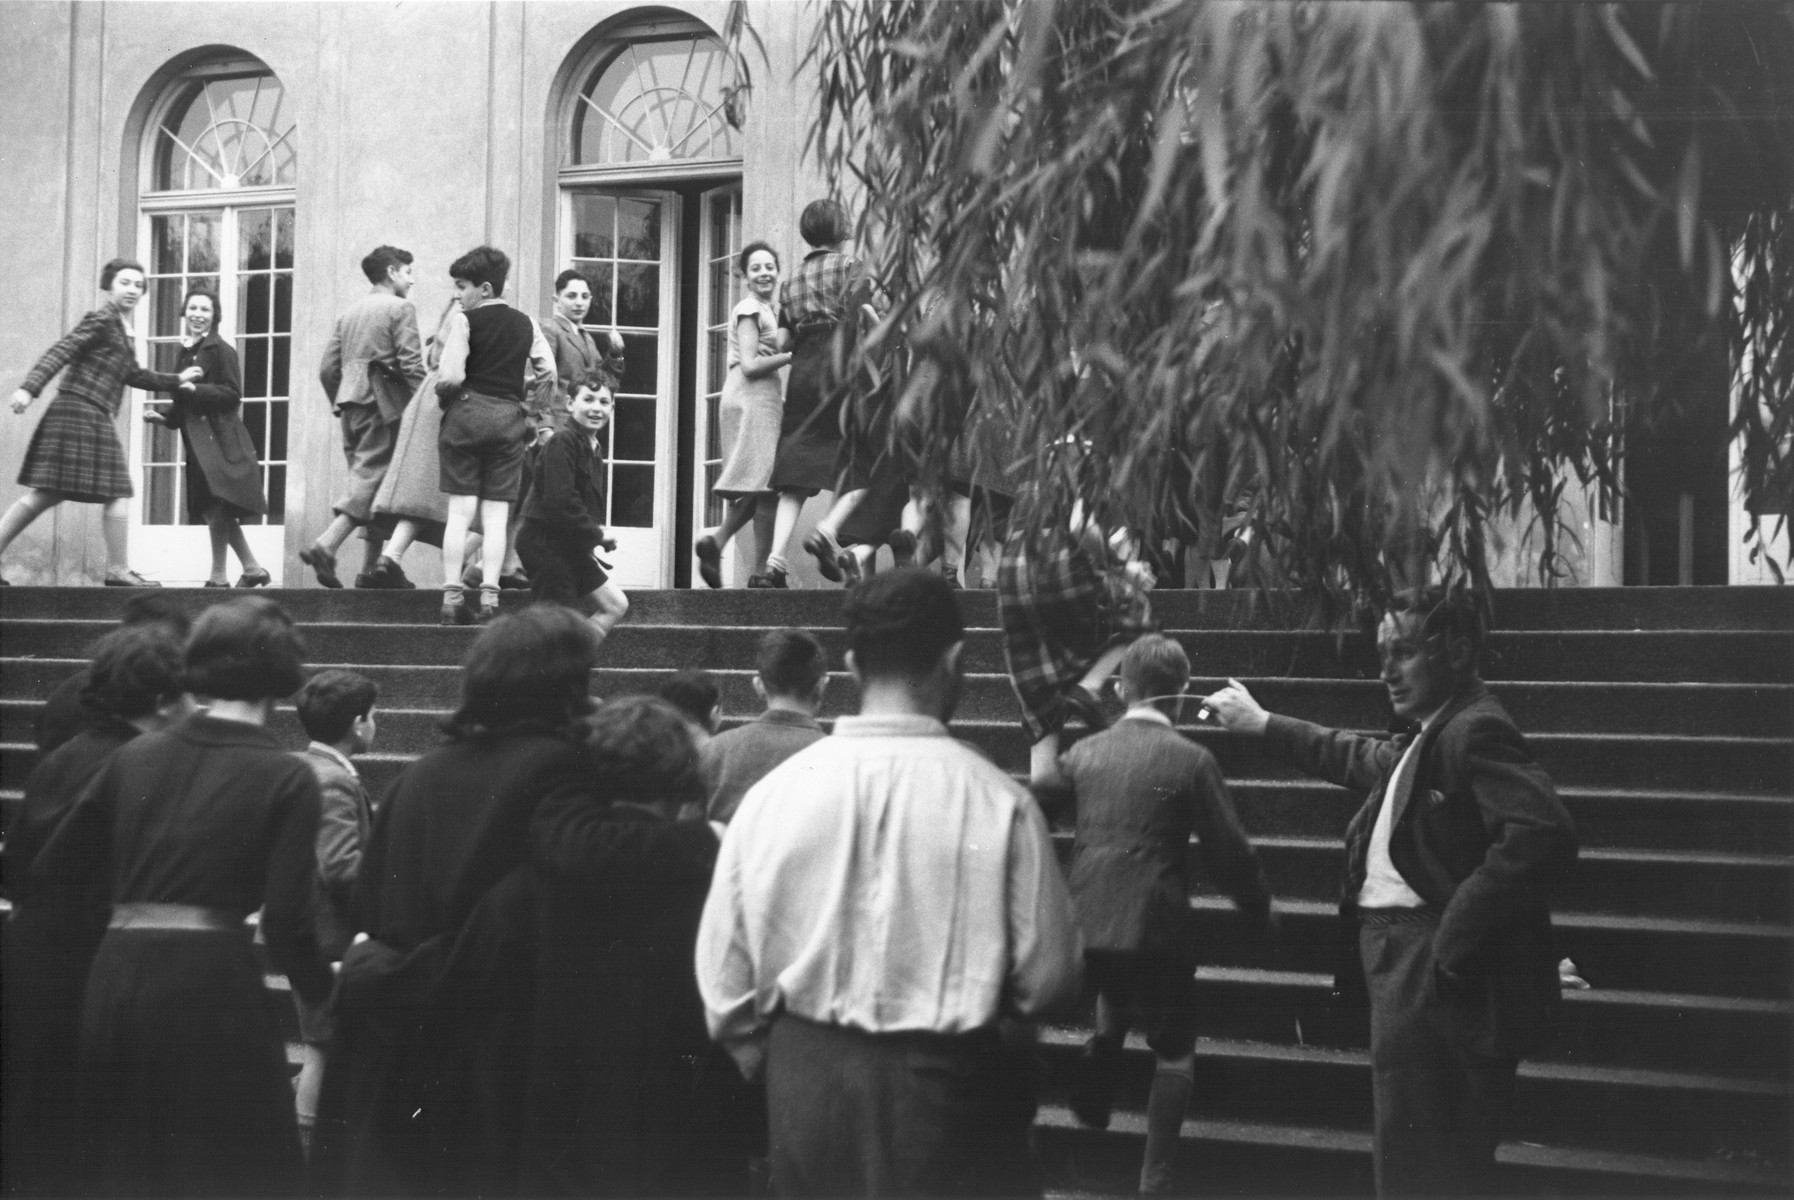 Teenage students ascend the steps to the villa housing the Goldschmidt Jewish private school in Berlin-Grunewald.